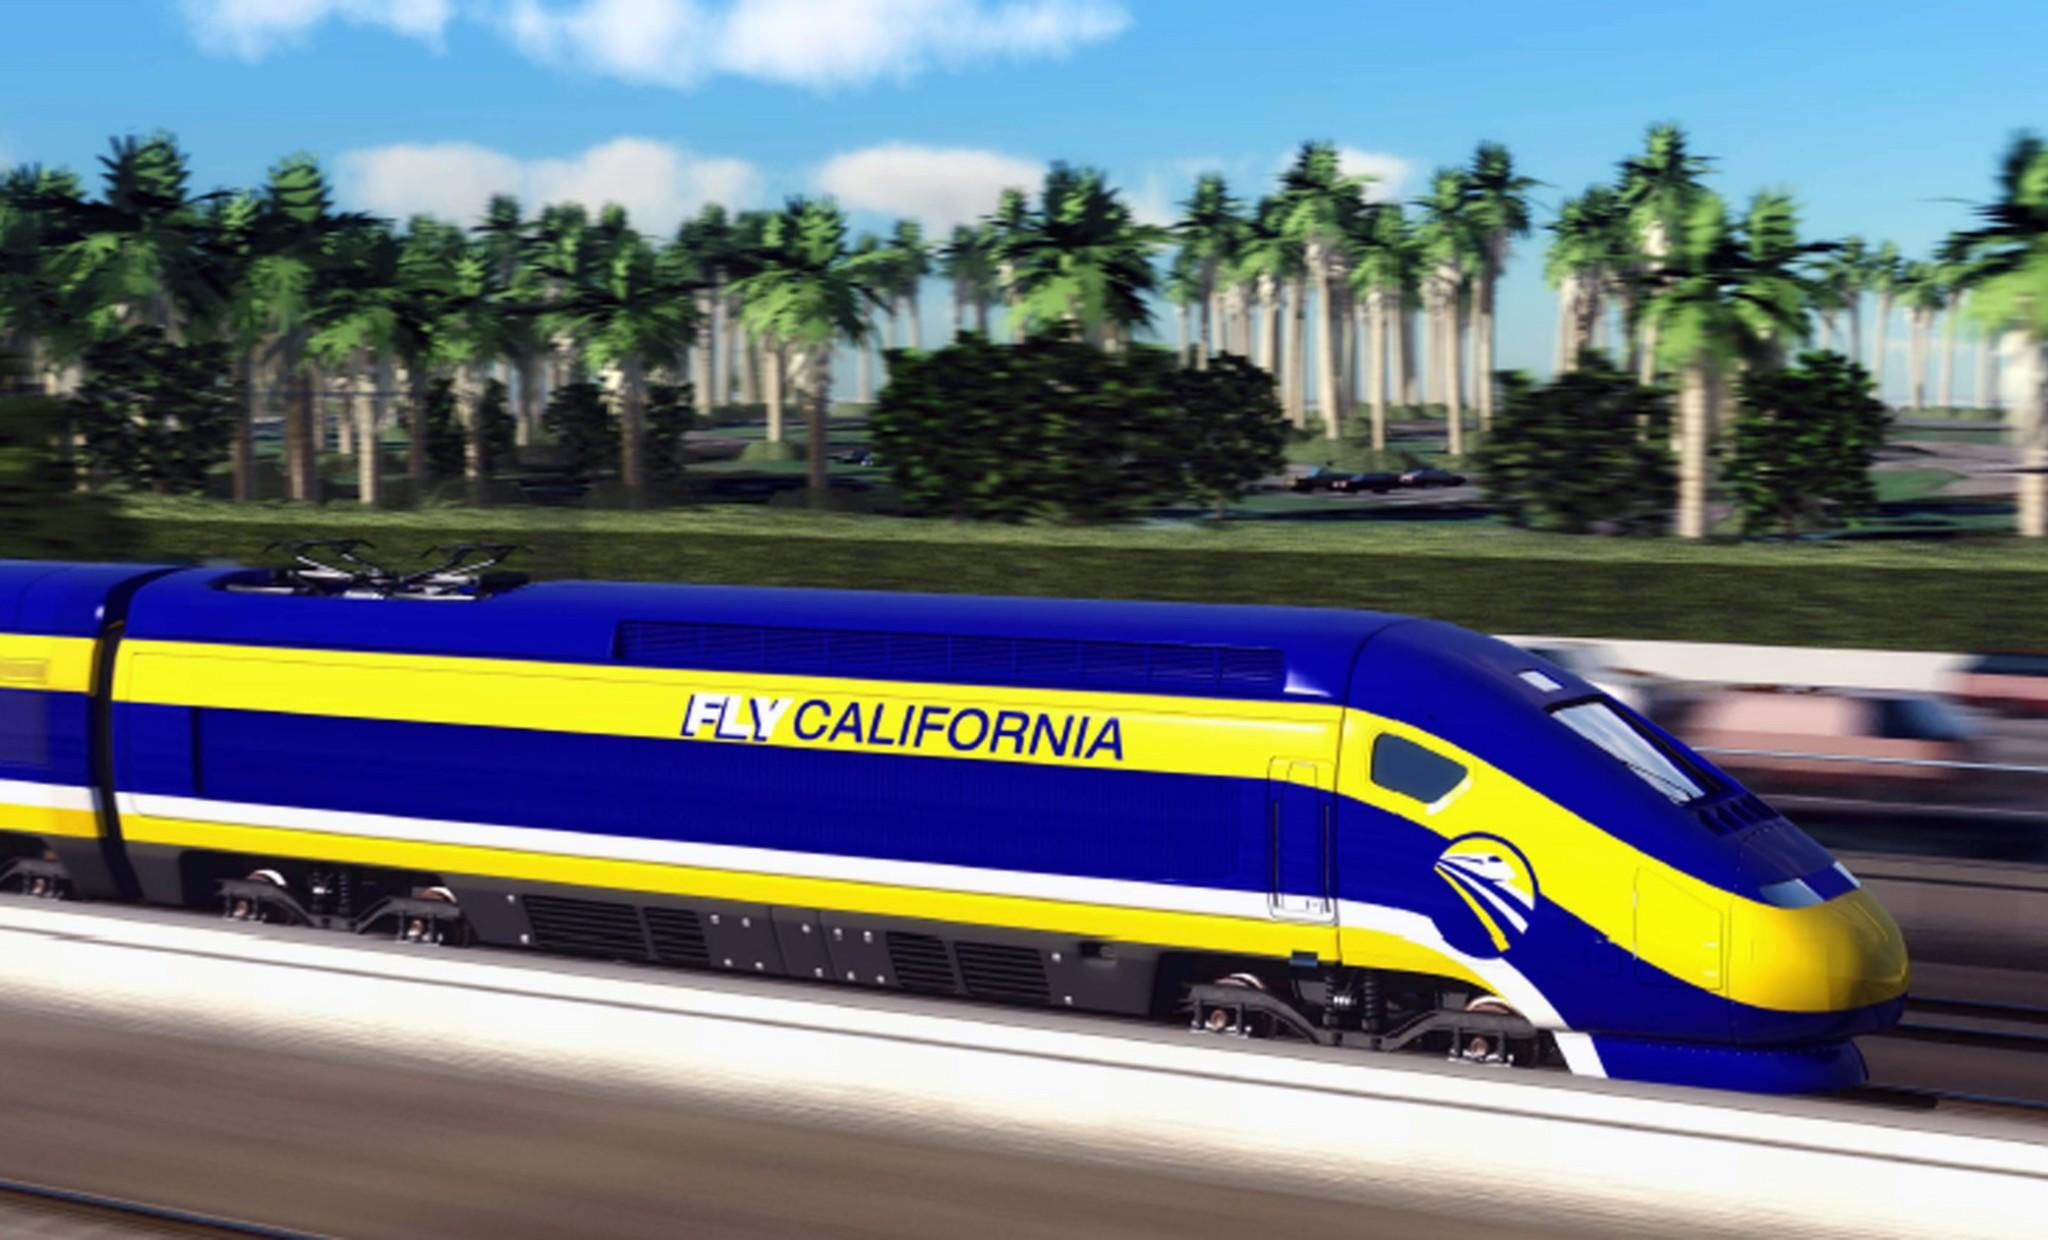 This image provided by the California High-Speed Rail Authority shows an artist's conception of a high-speed rail car in California. Experts say it's unlikely the bullet train will be able to make regularly scheduled trips of two hours and 40 minutes between L.A. and San Francisco, as promised to voters.